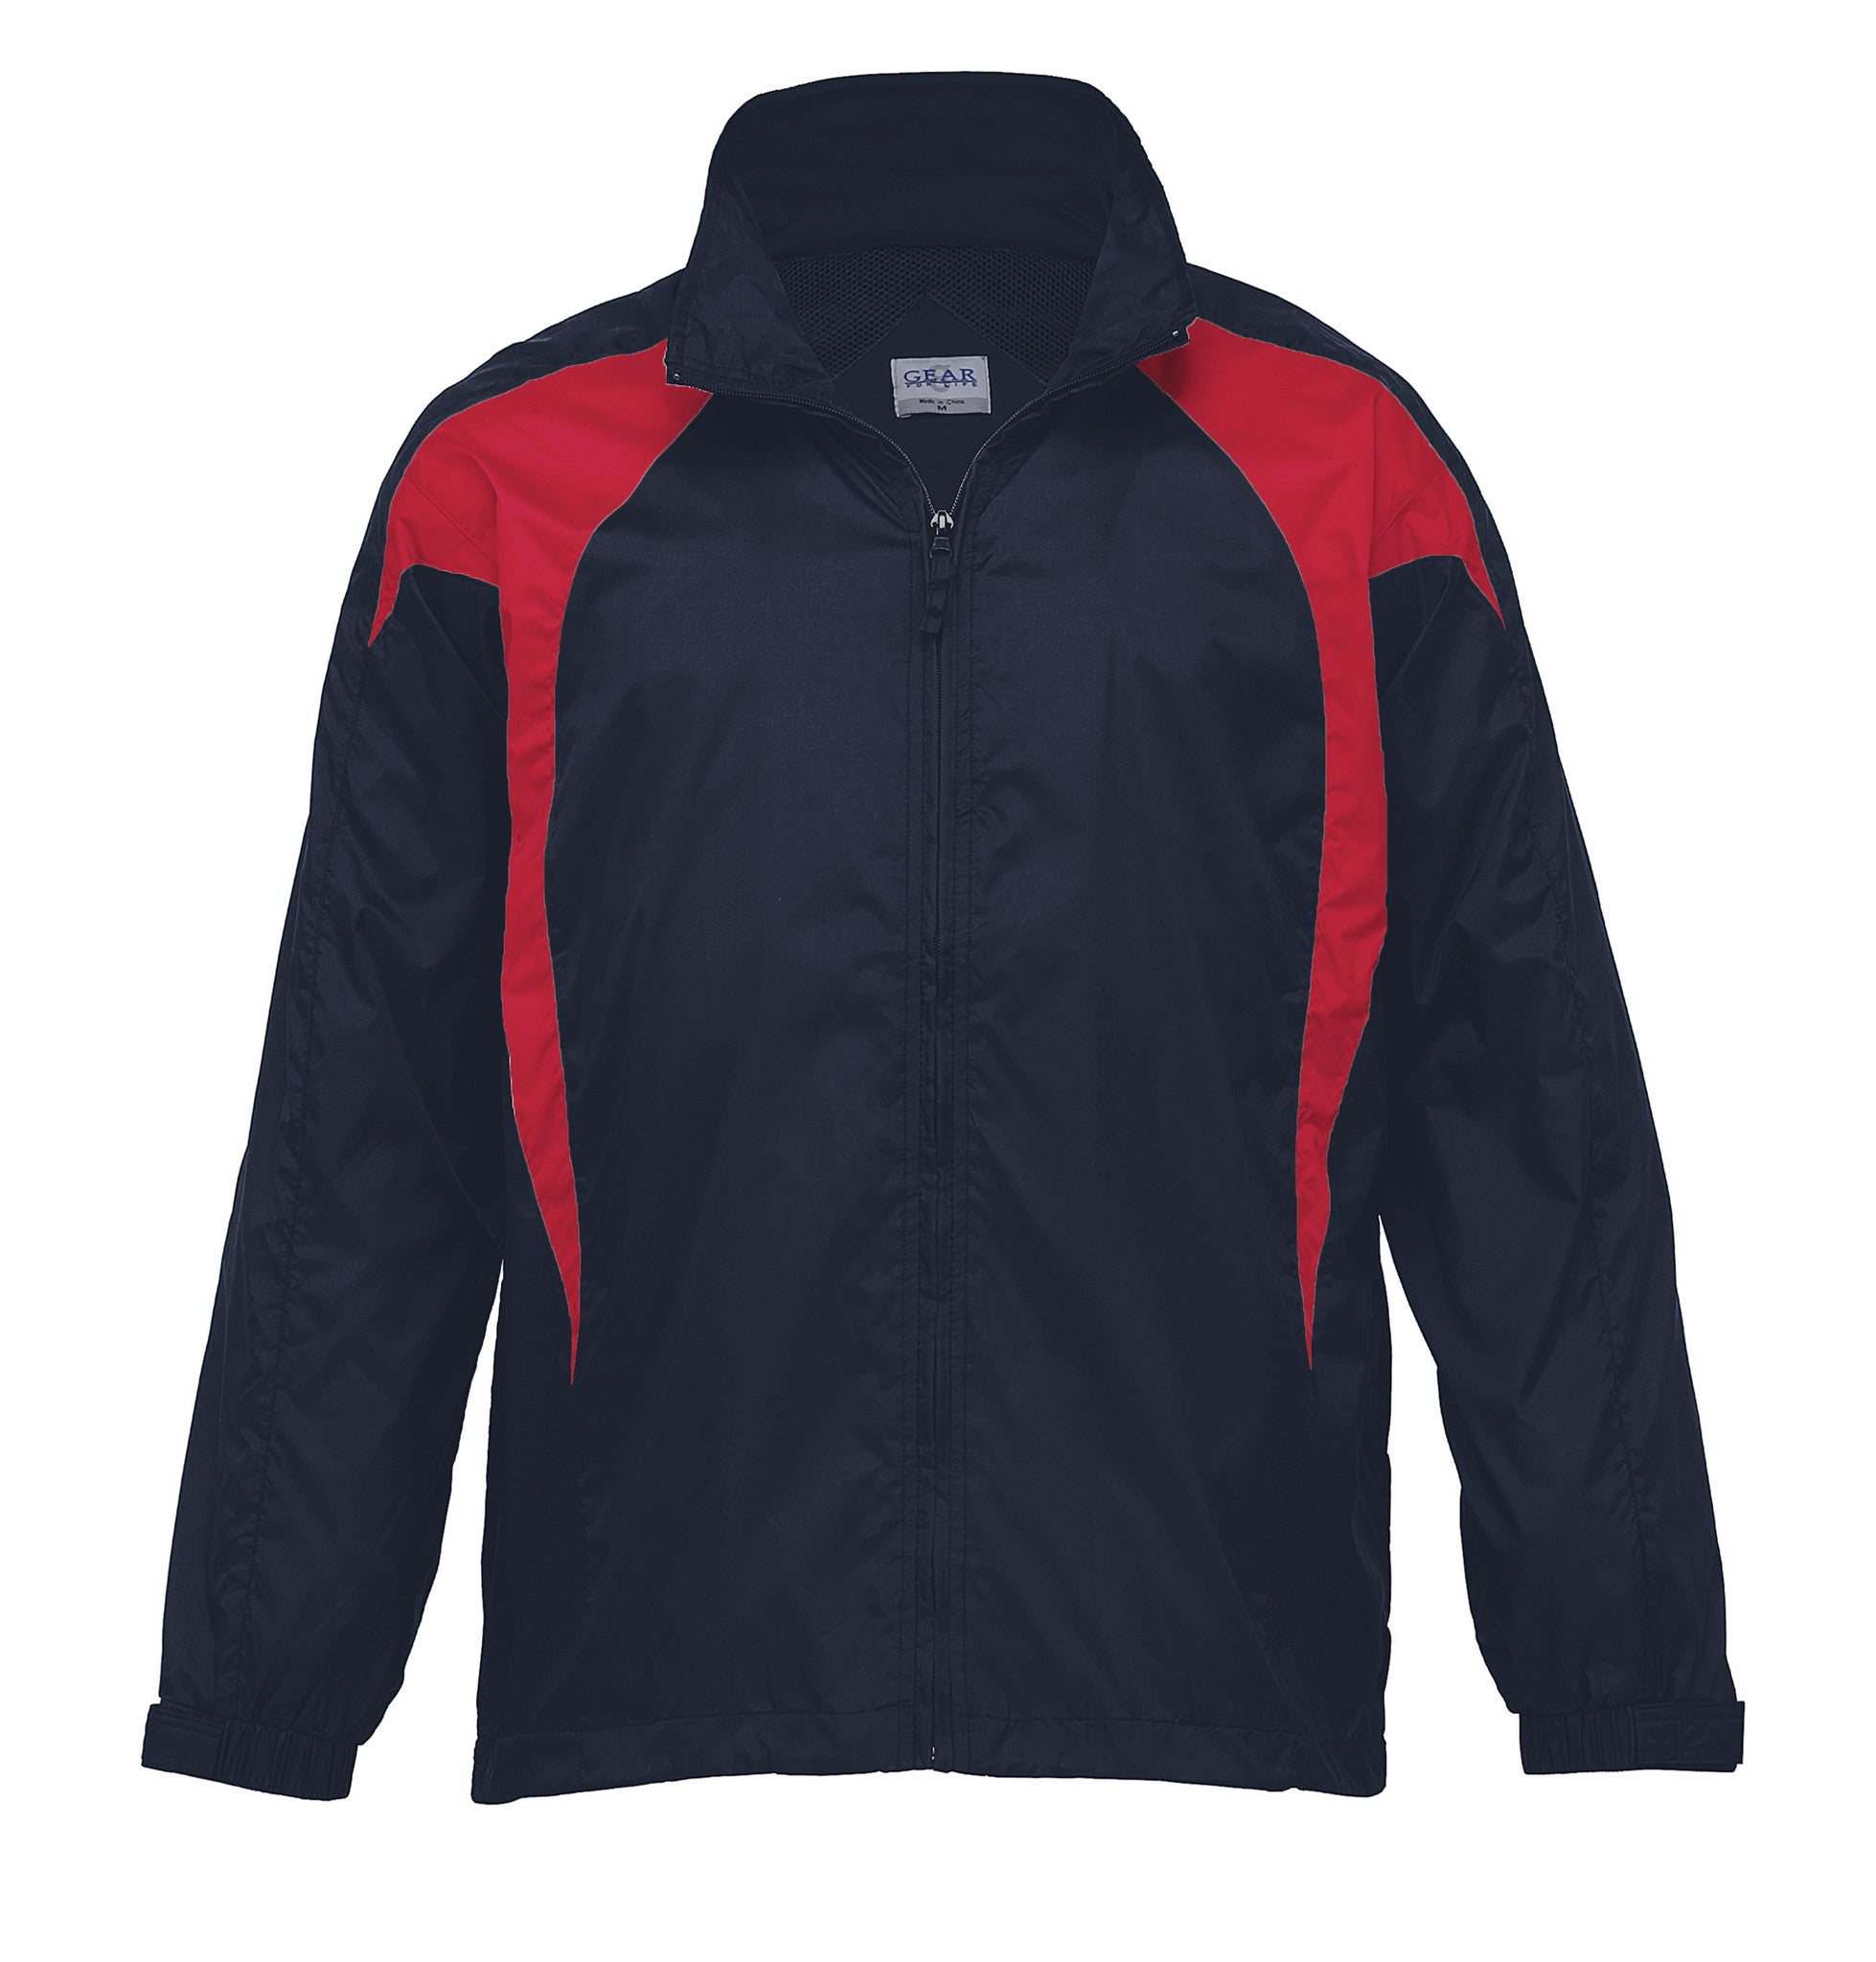 Gear For Life-Gear For Life Spliced Zenith Jacket(2nd 6 Colours)--Corporate Apparel Online - 1